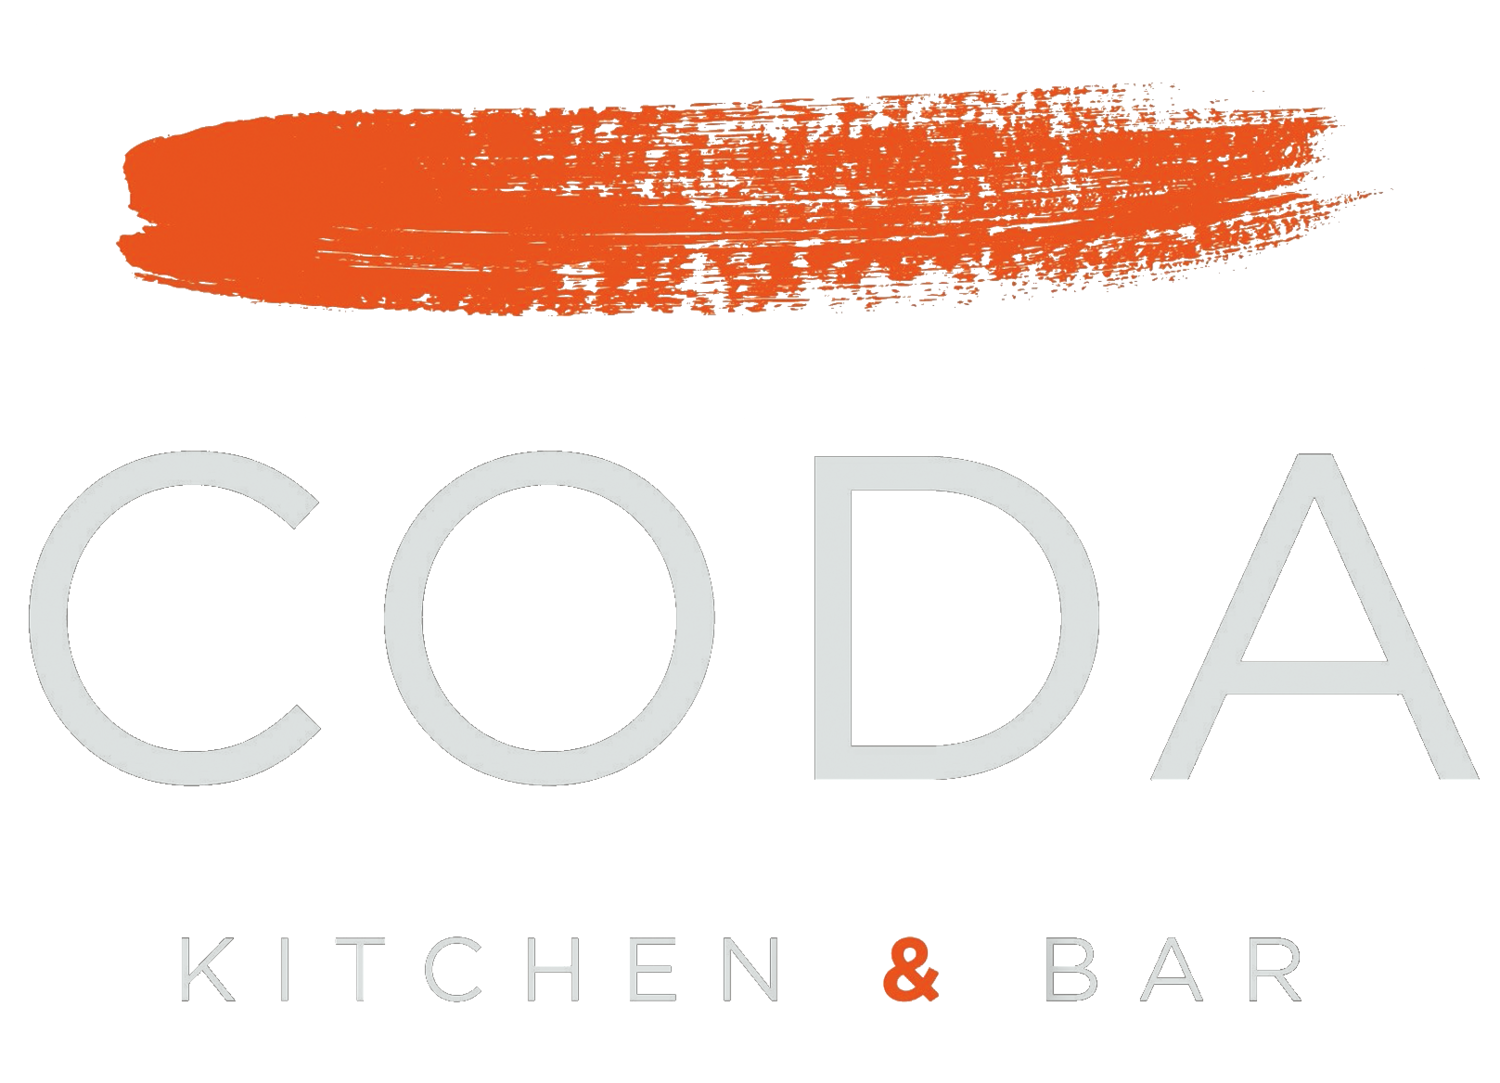 Coda Kitchen and Bar